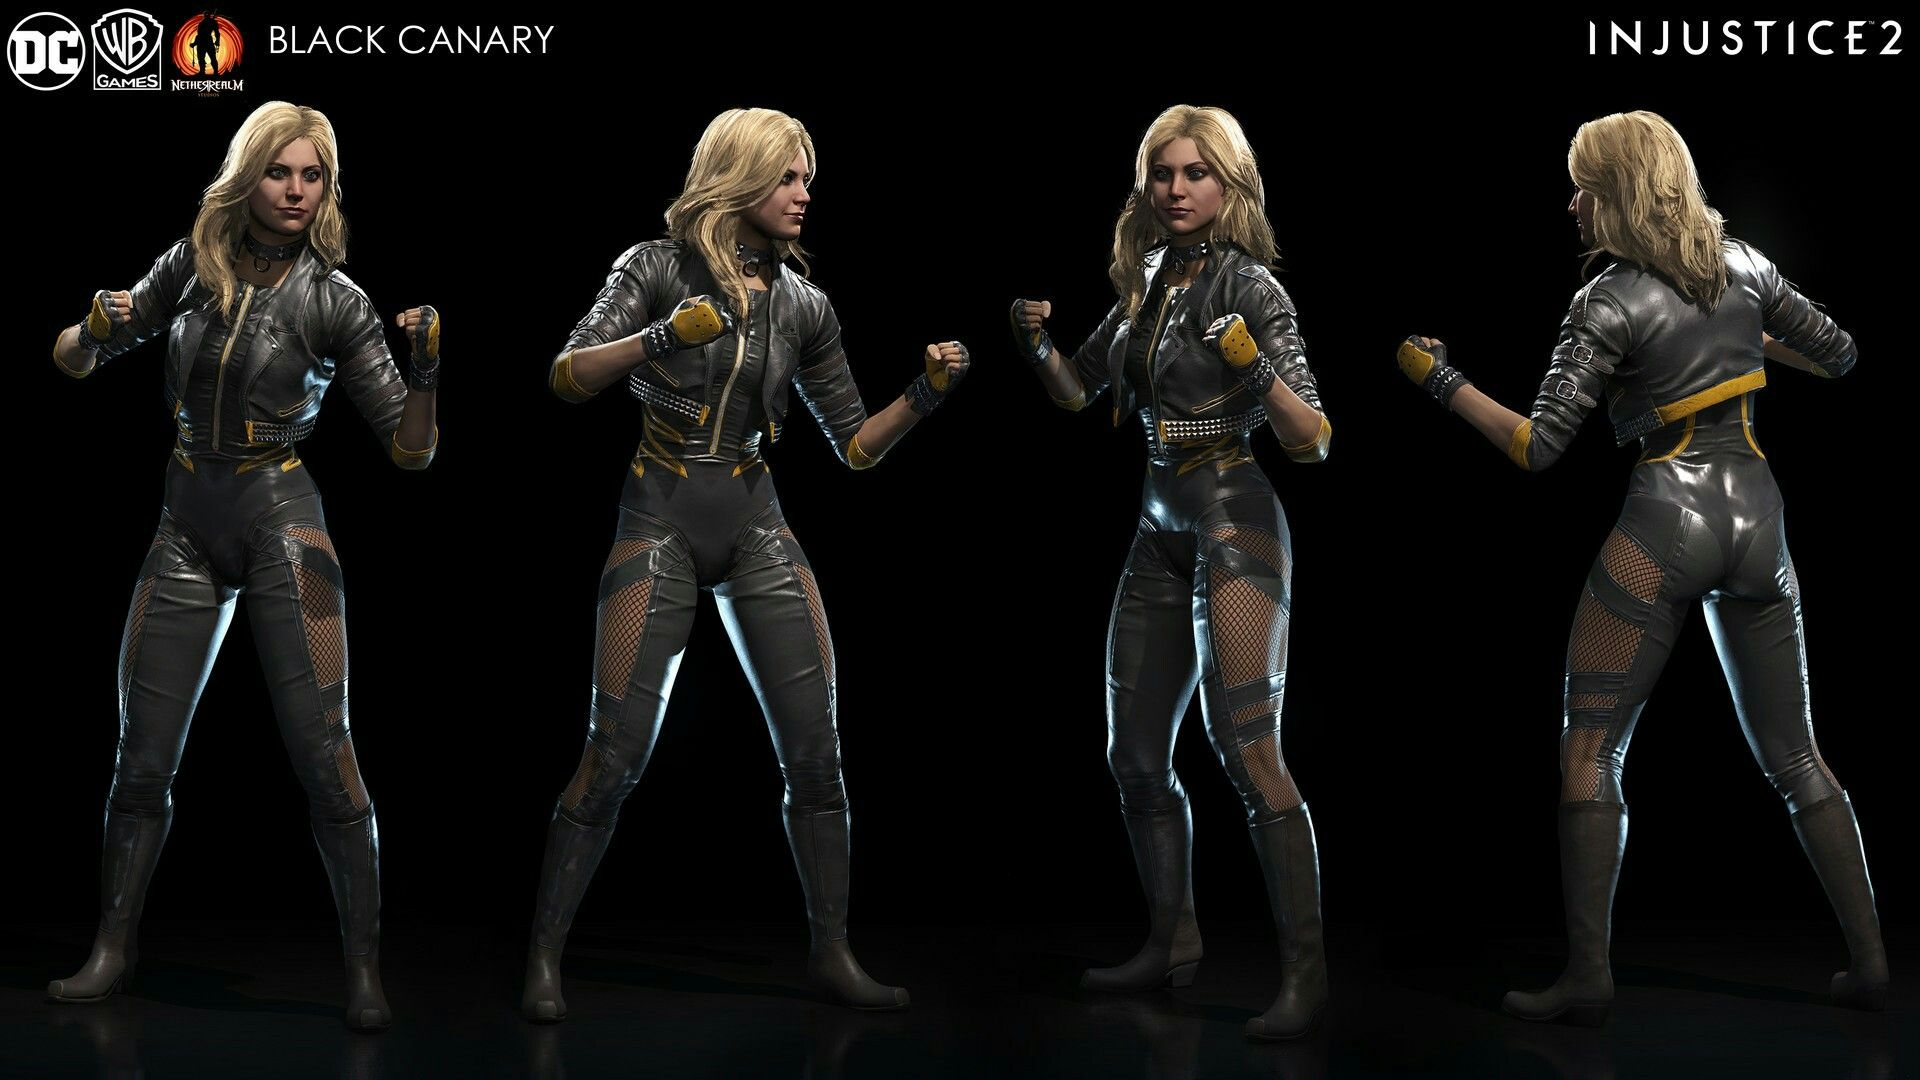 Hydraballista — Black Canary sketch. Love this costume, she... |Injustice Black Canary Drawing